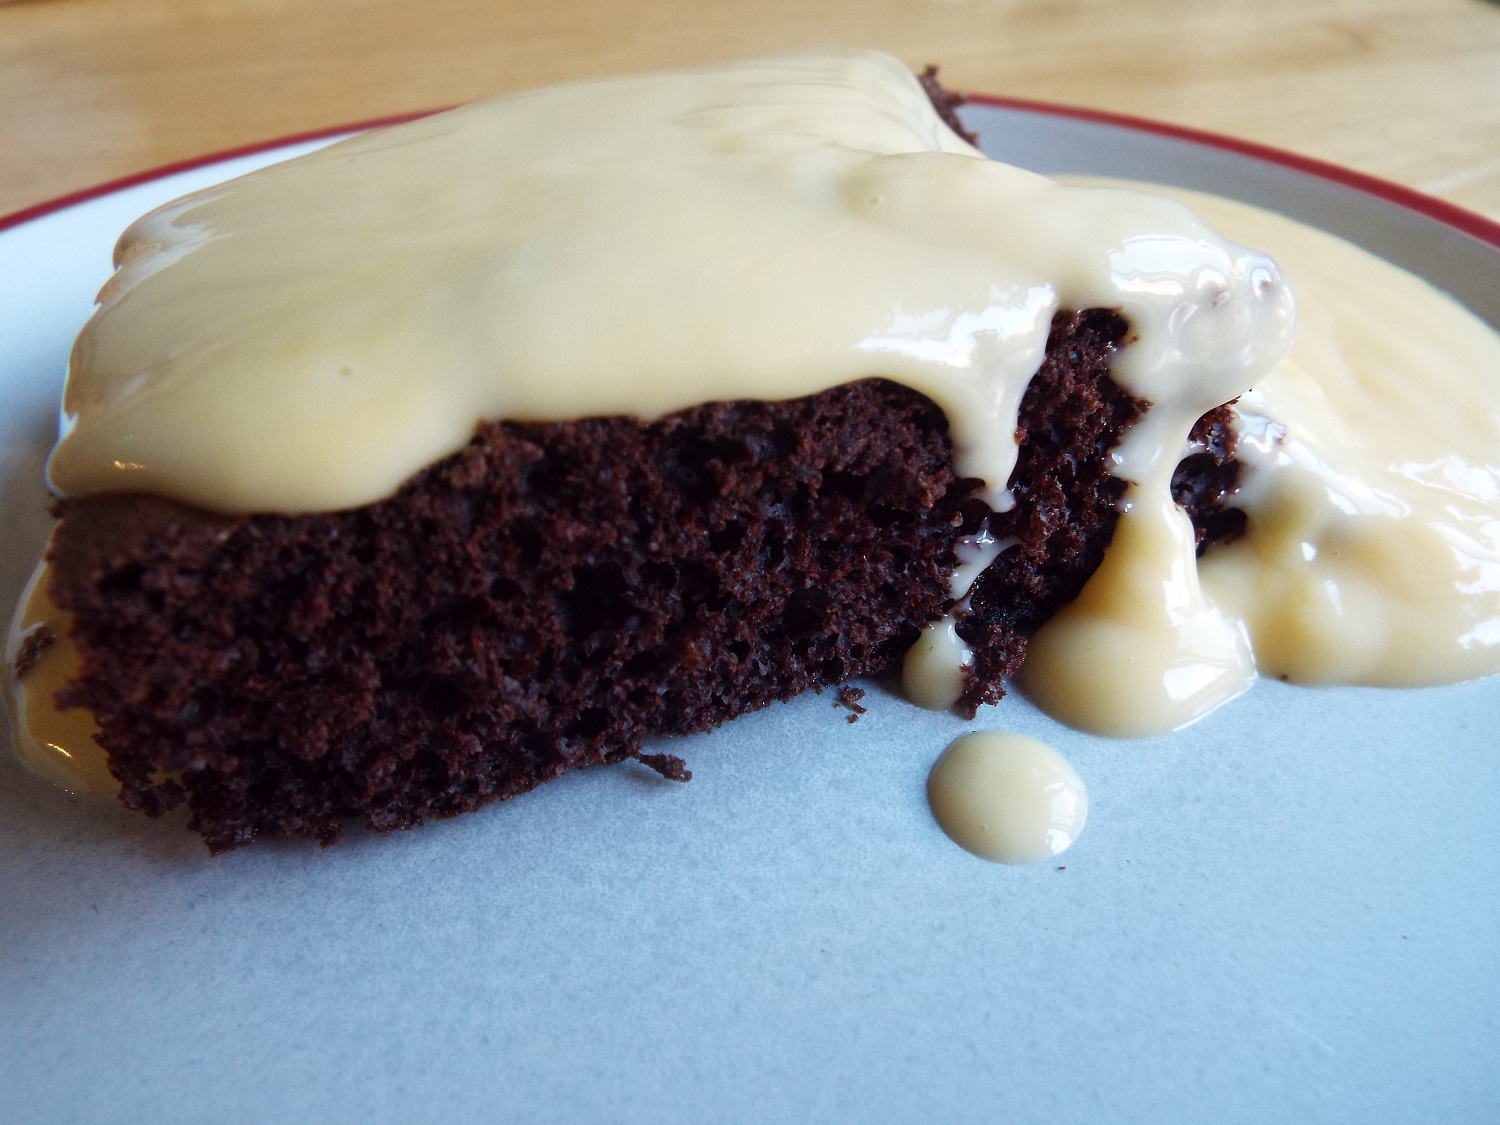 Chocolate Cake & Custard - All this came out of packets - add water and eggs.You need a large tray(s) and a large pot, and a whisk. Make the cake in advance, and serve with hot custard. At the end of a miserable digging day, it helps.